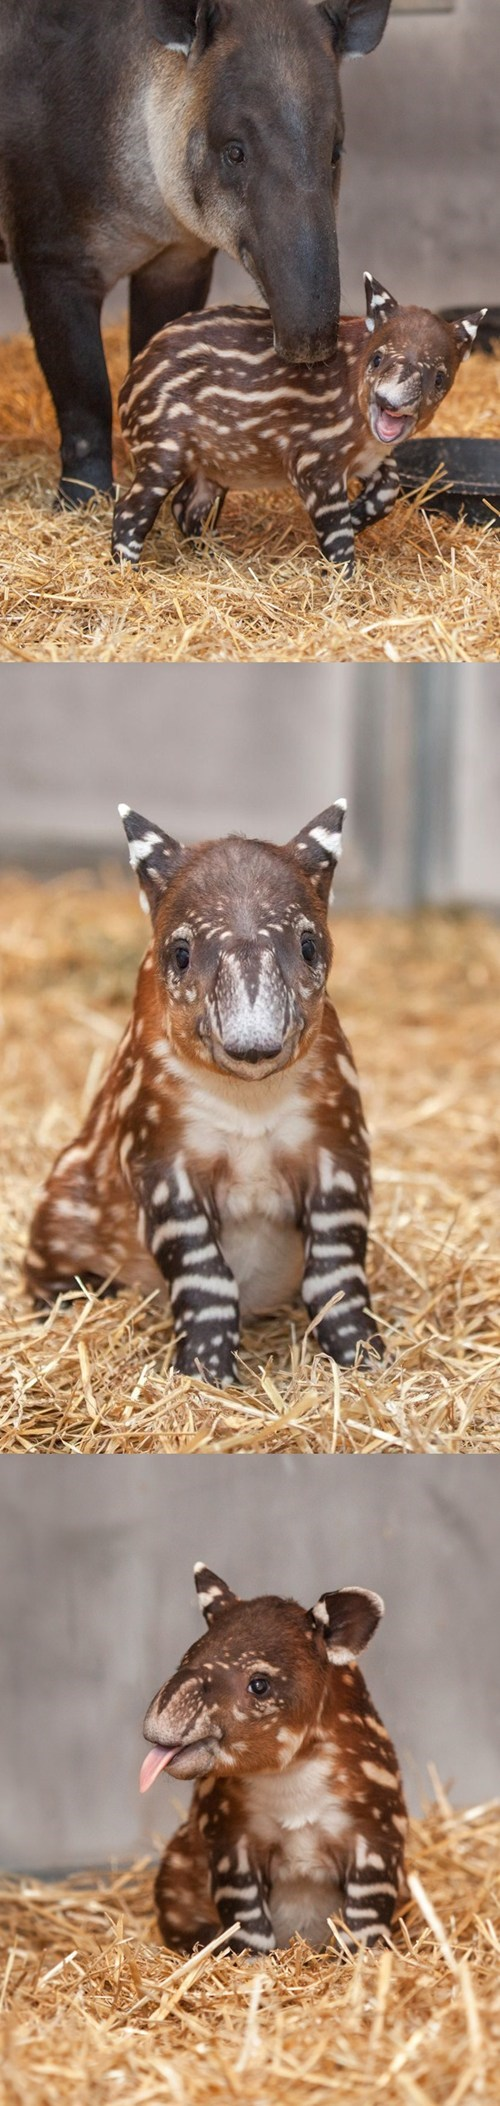 photoset,baby,cute,tapir,squee